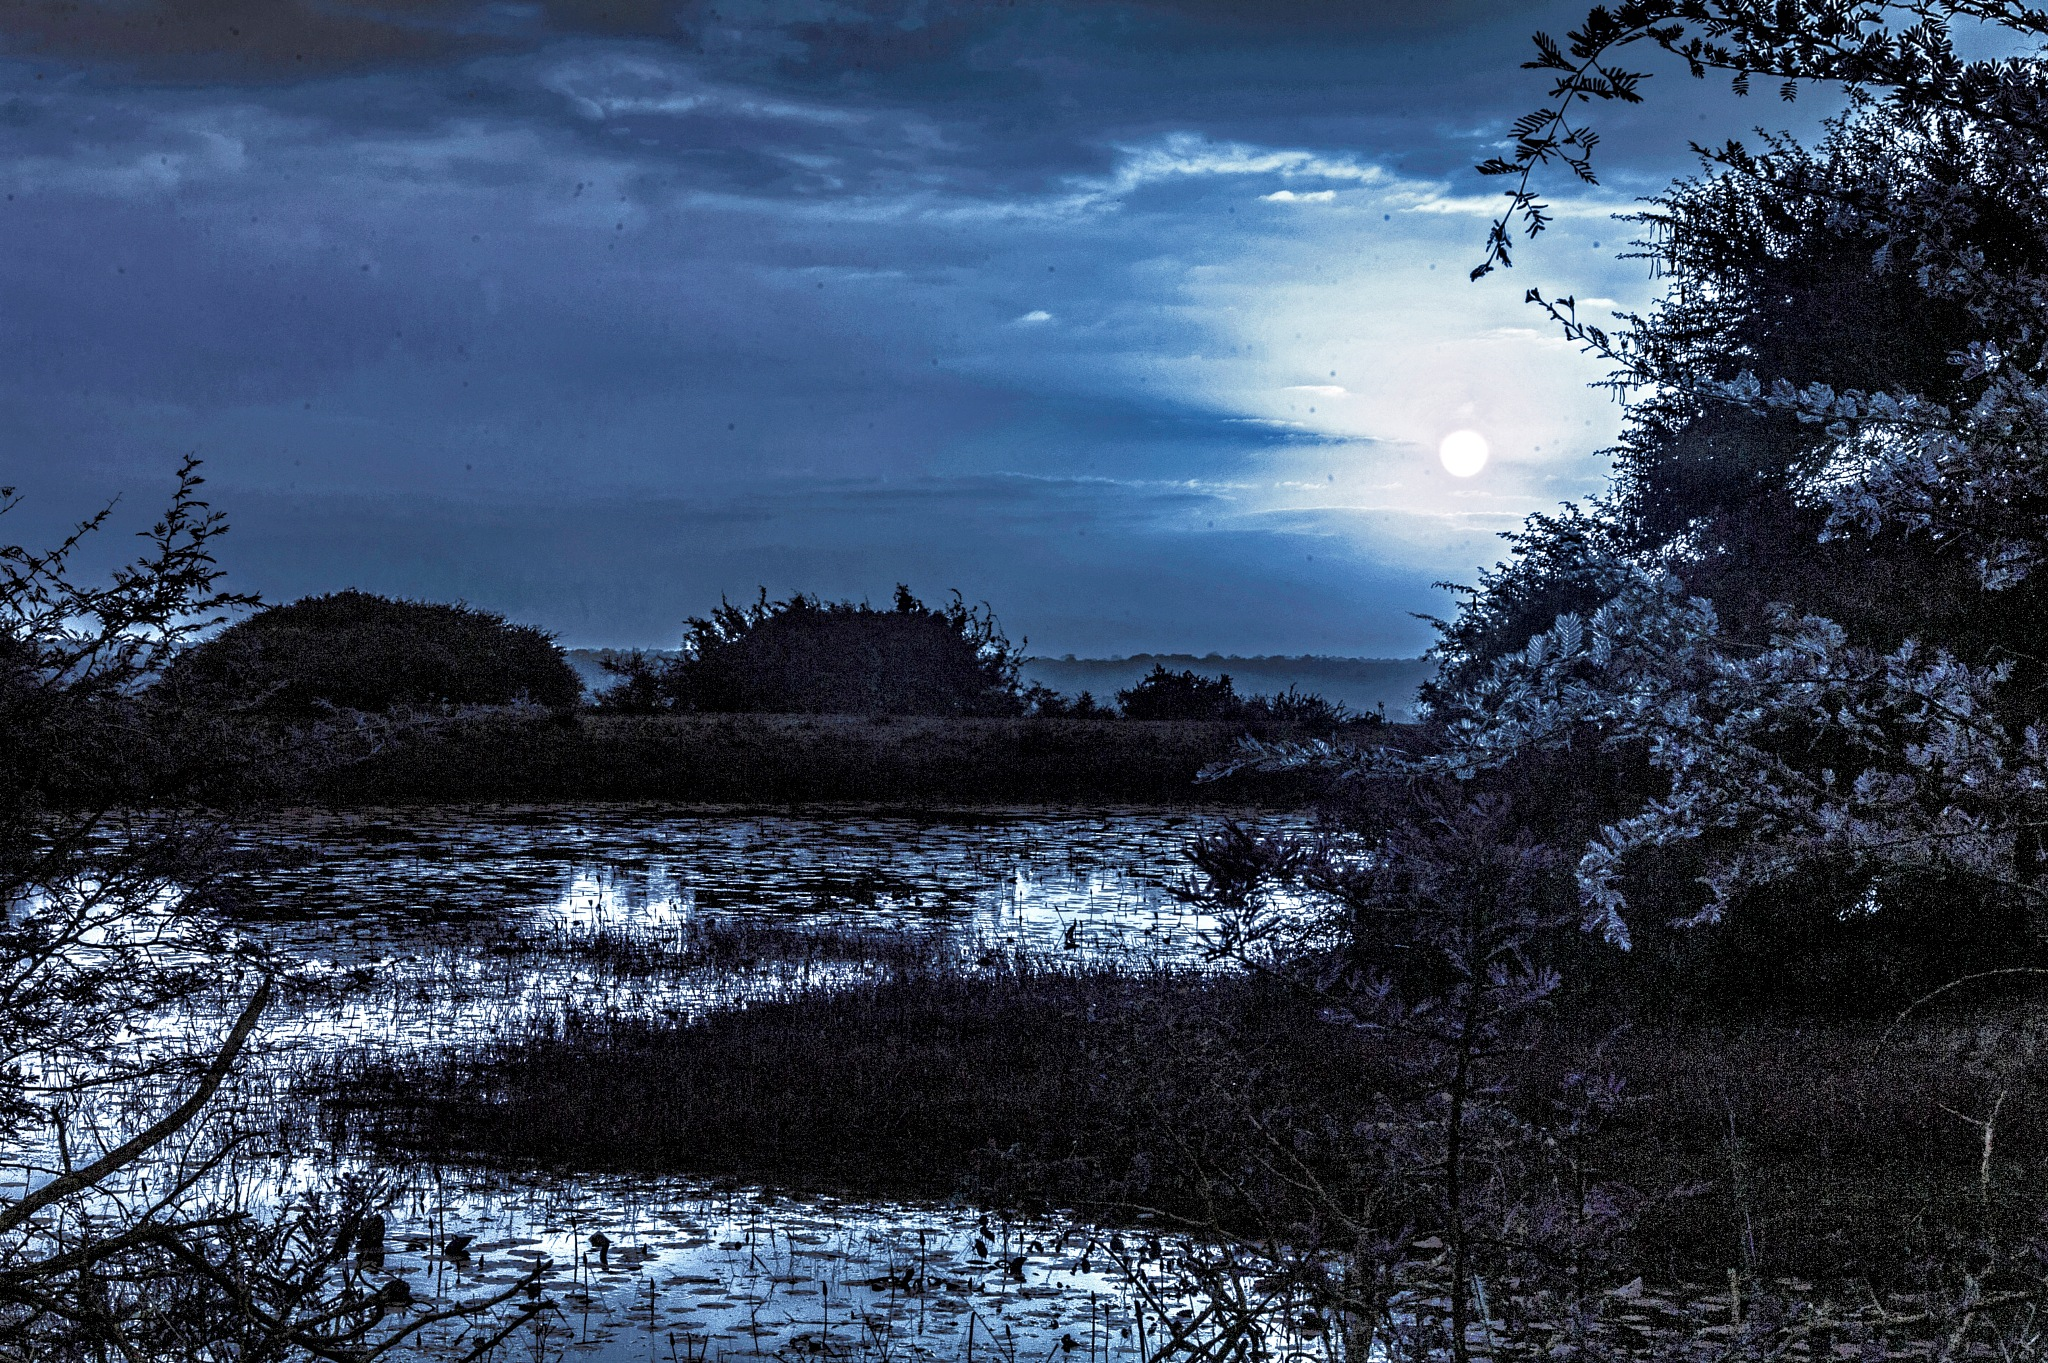 Moon Light Shadow  by PeterMChambers